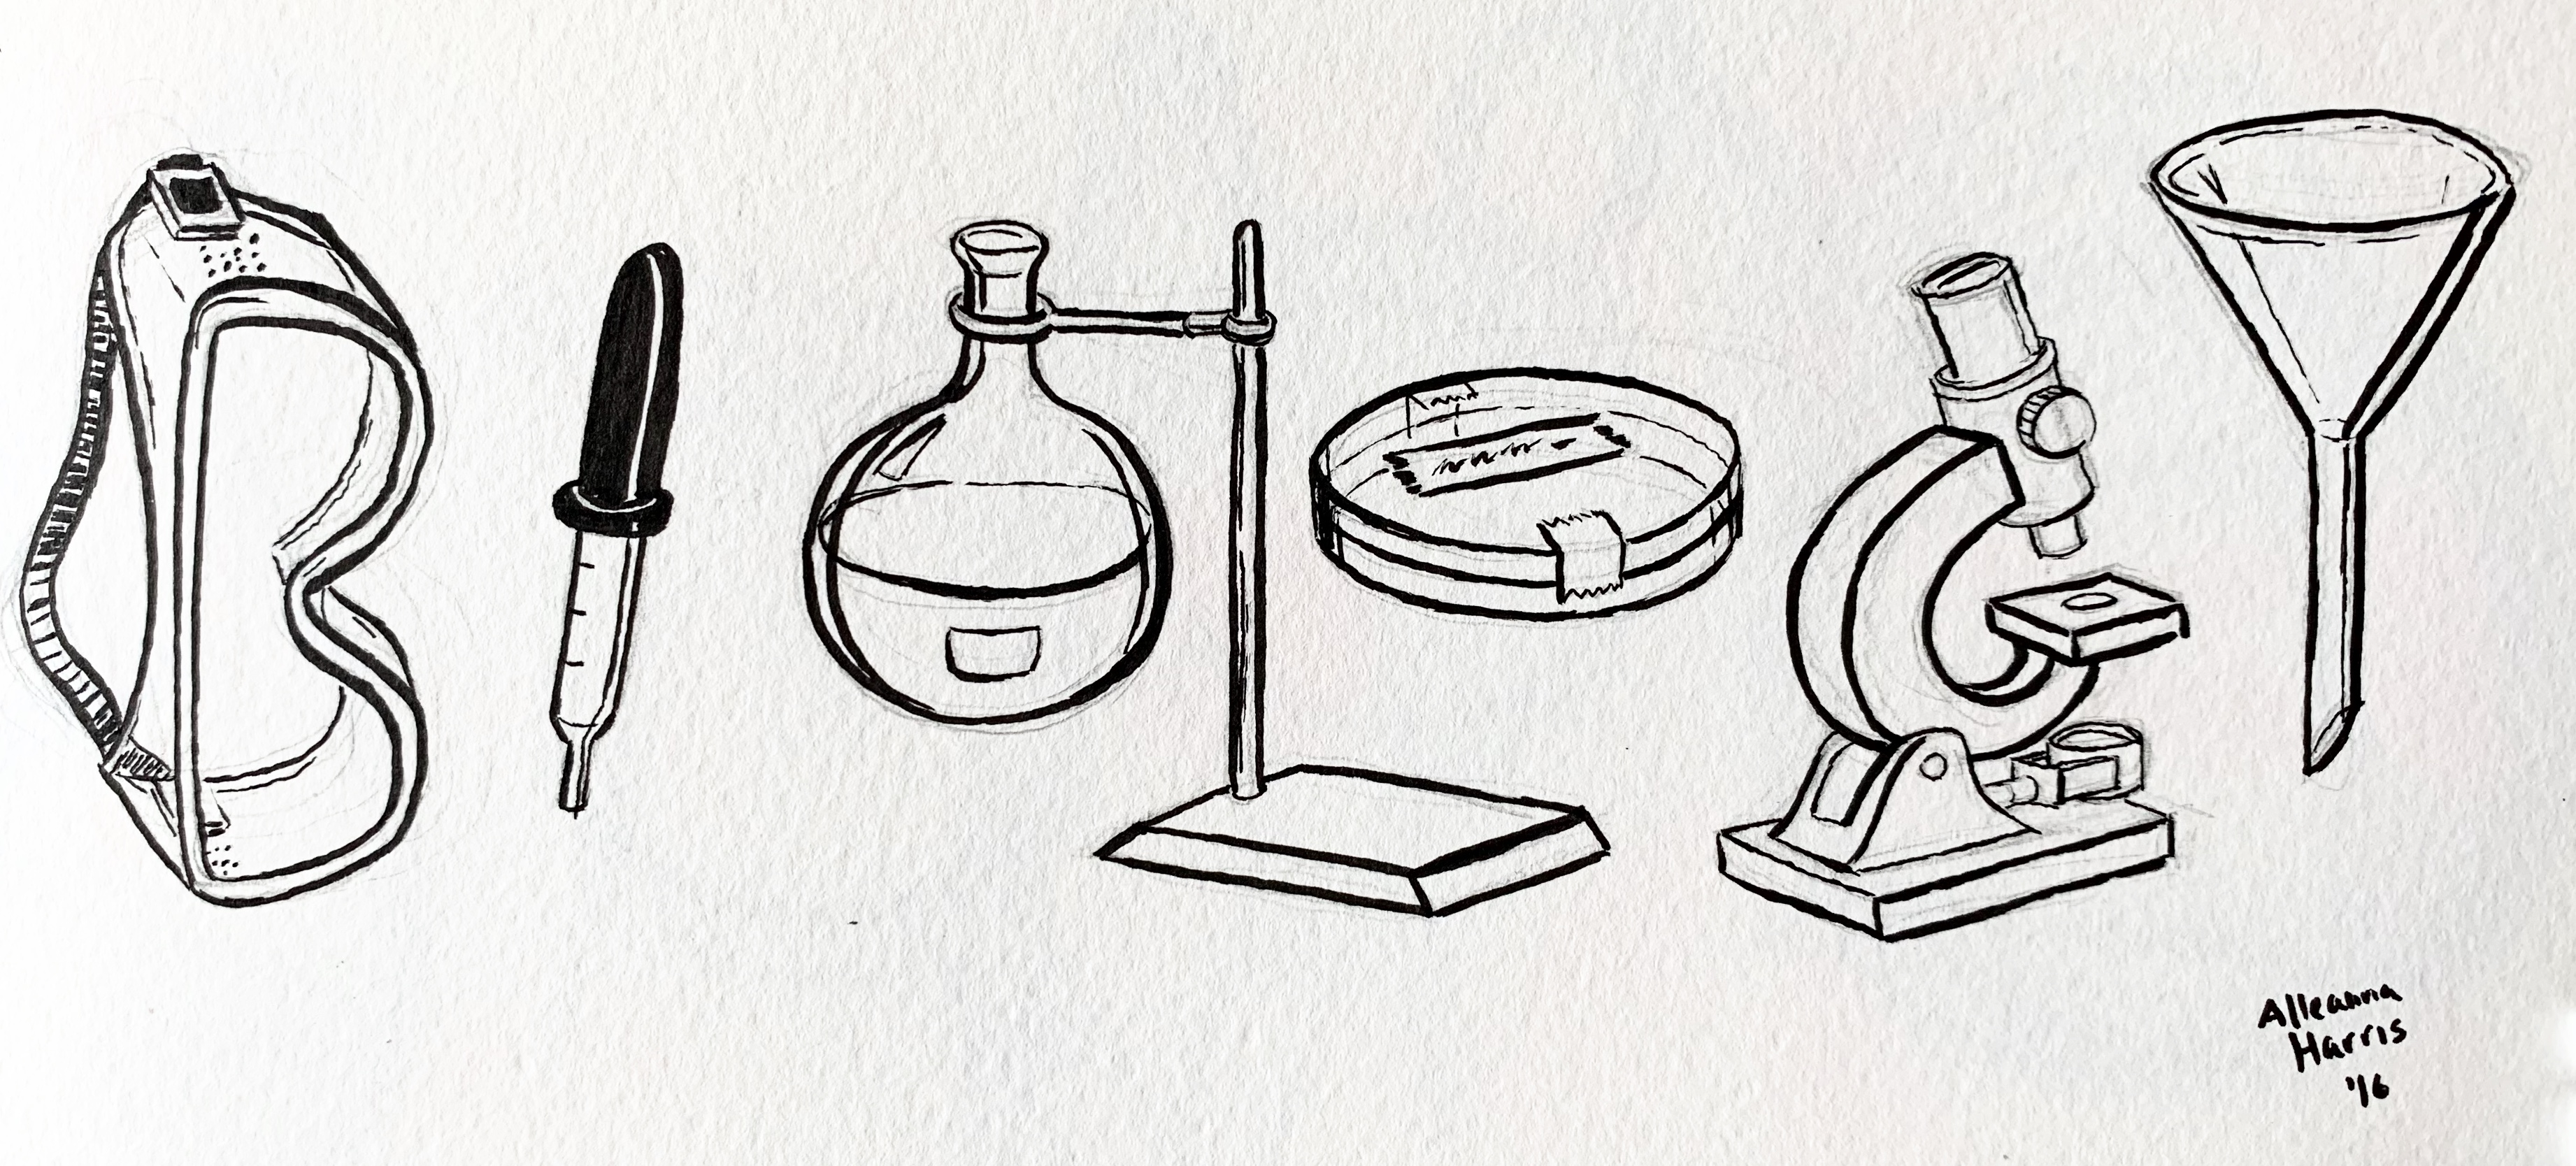 A google doodle influenced drawing by alleanna harris of the word biology made up up drawings of goggles, a dropper, a flask, a petri disk, a microscope, and a funnel.